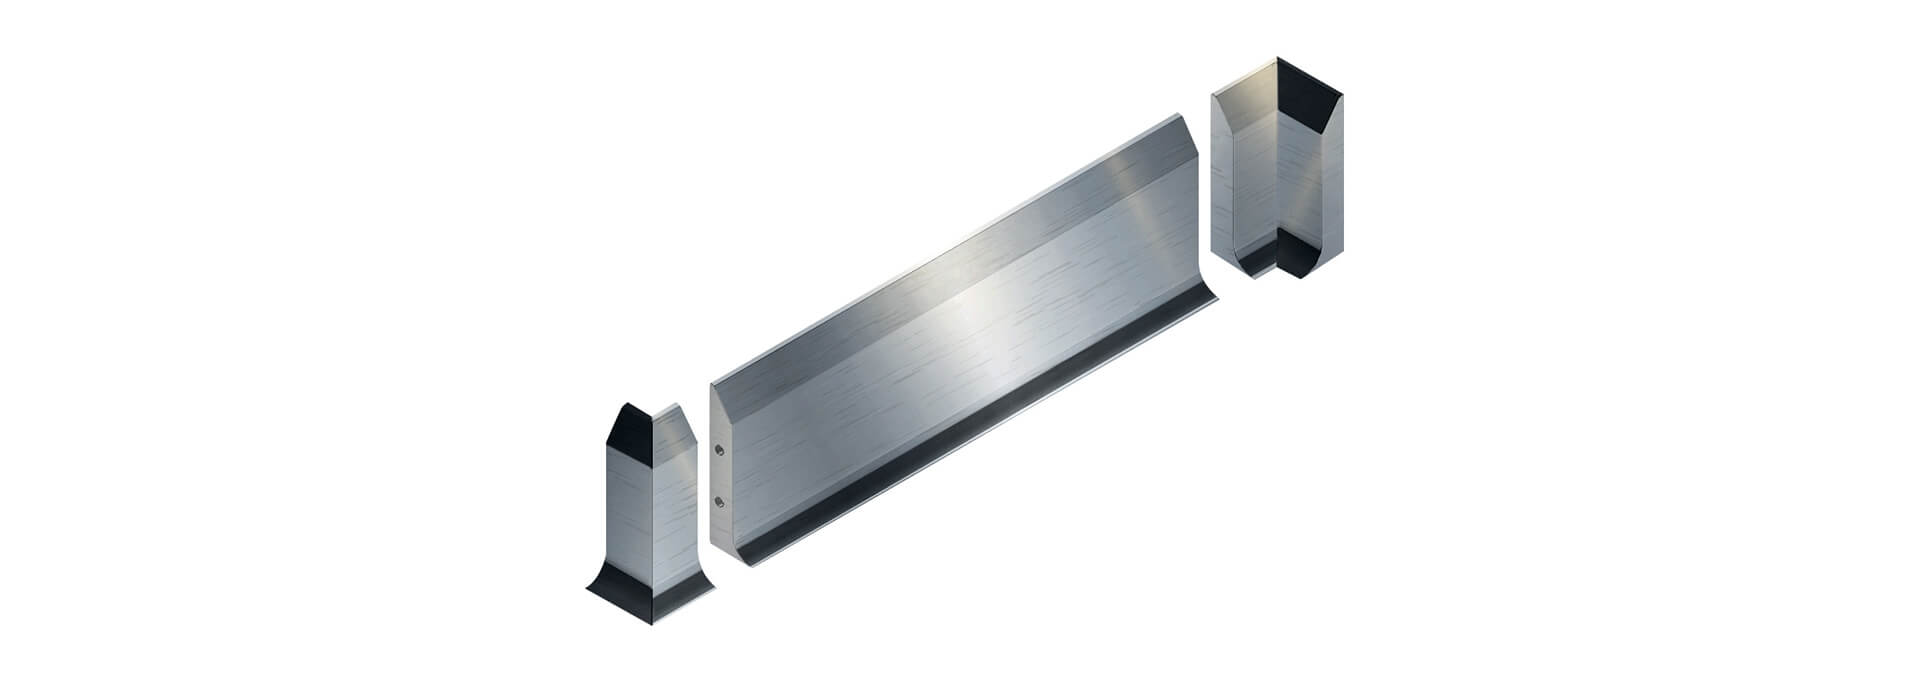 Stainless Steel Hygienic Kerb HBKOSS31550-000